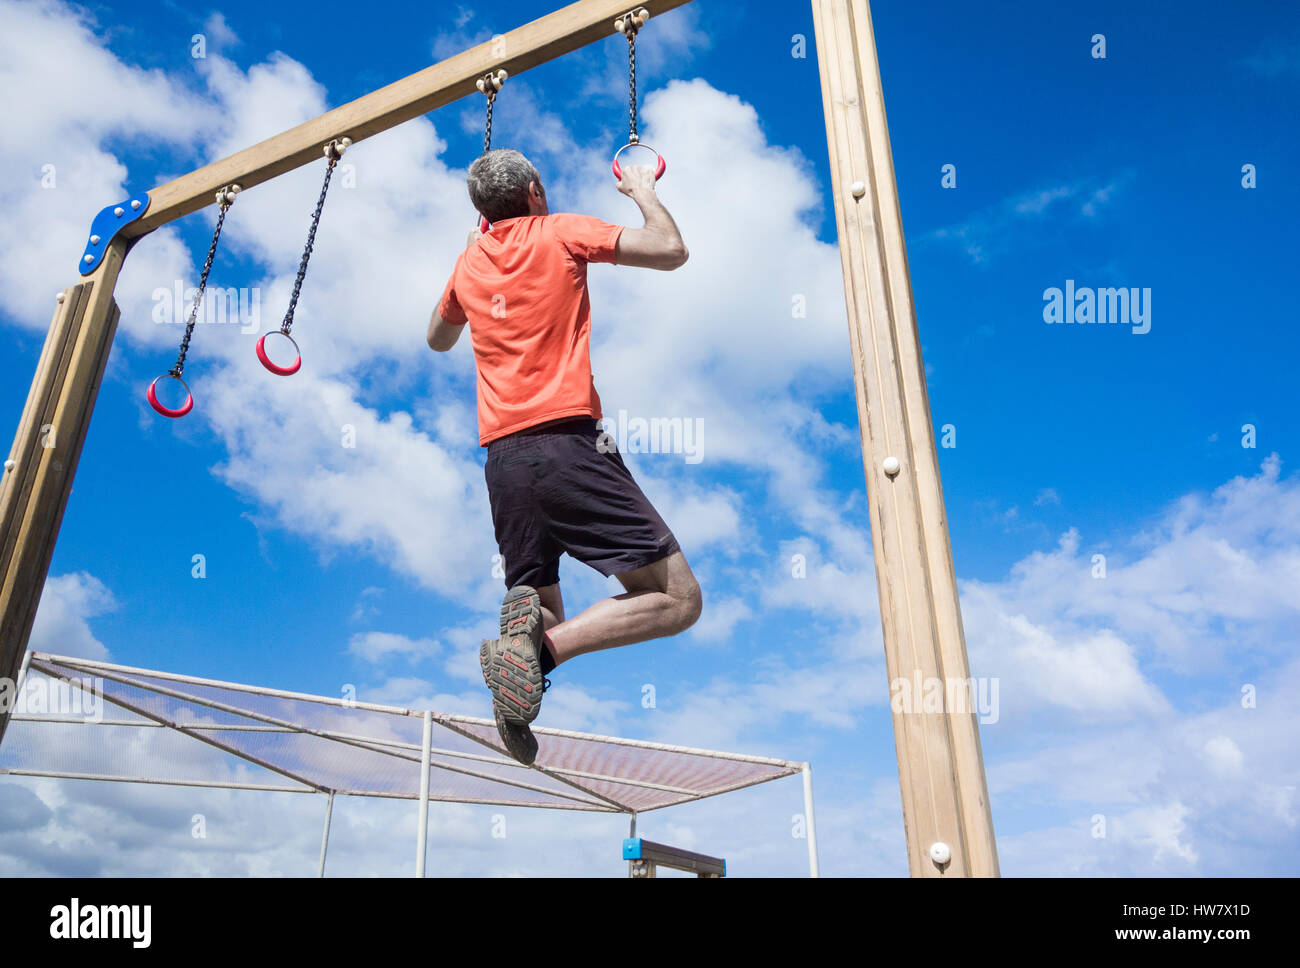 Mature man performing pull ups on rings in park - Stock Image